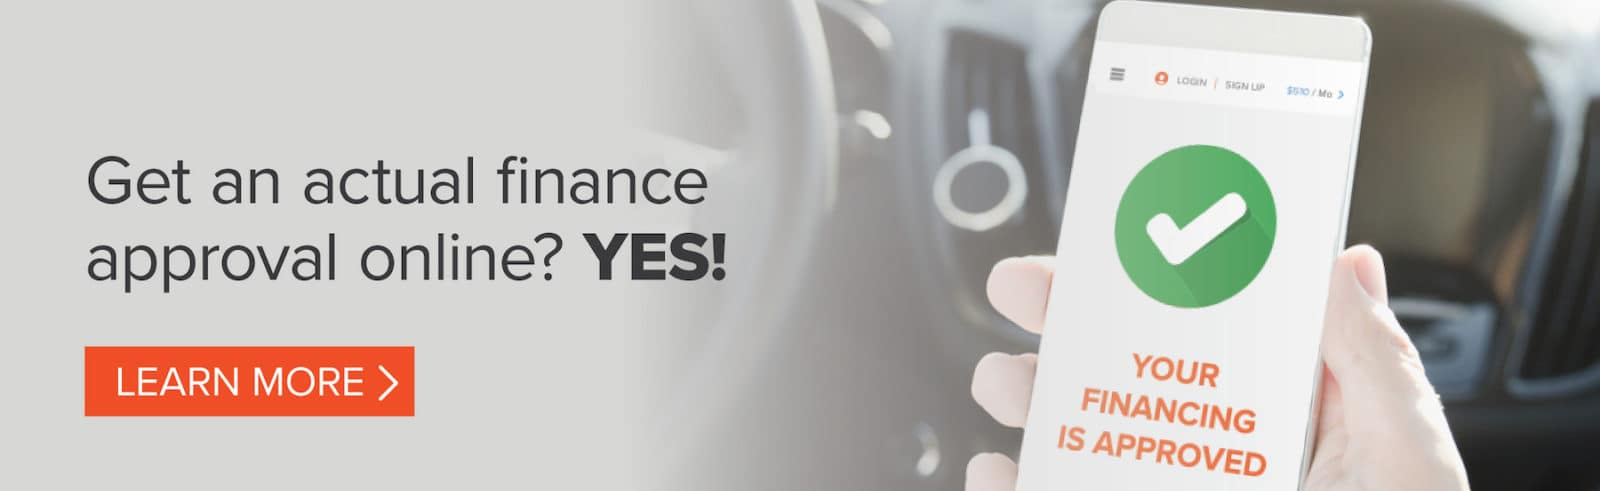 Get an actual finance approval online